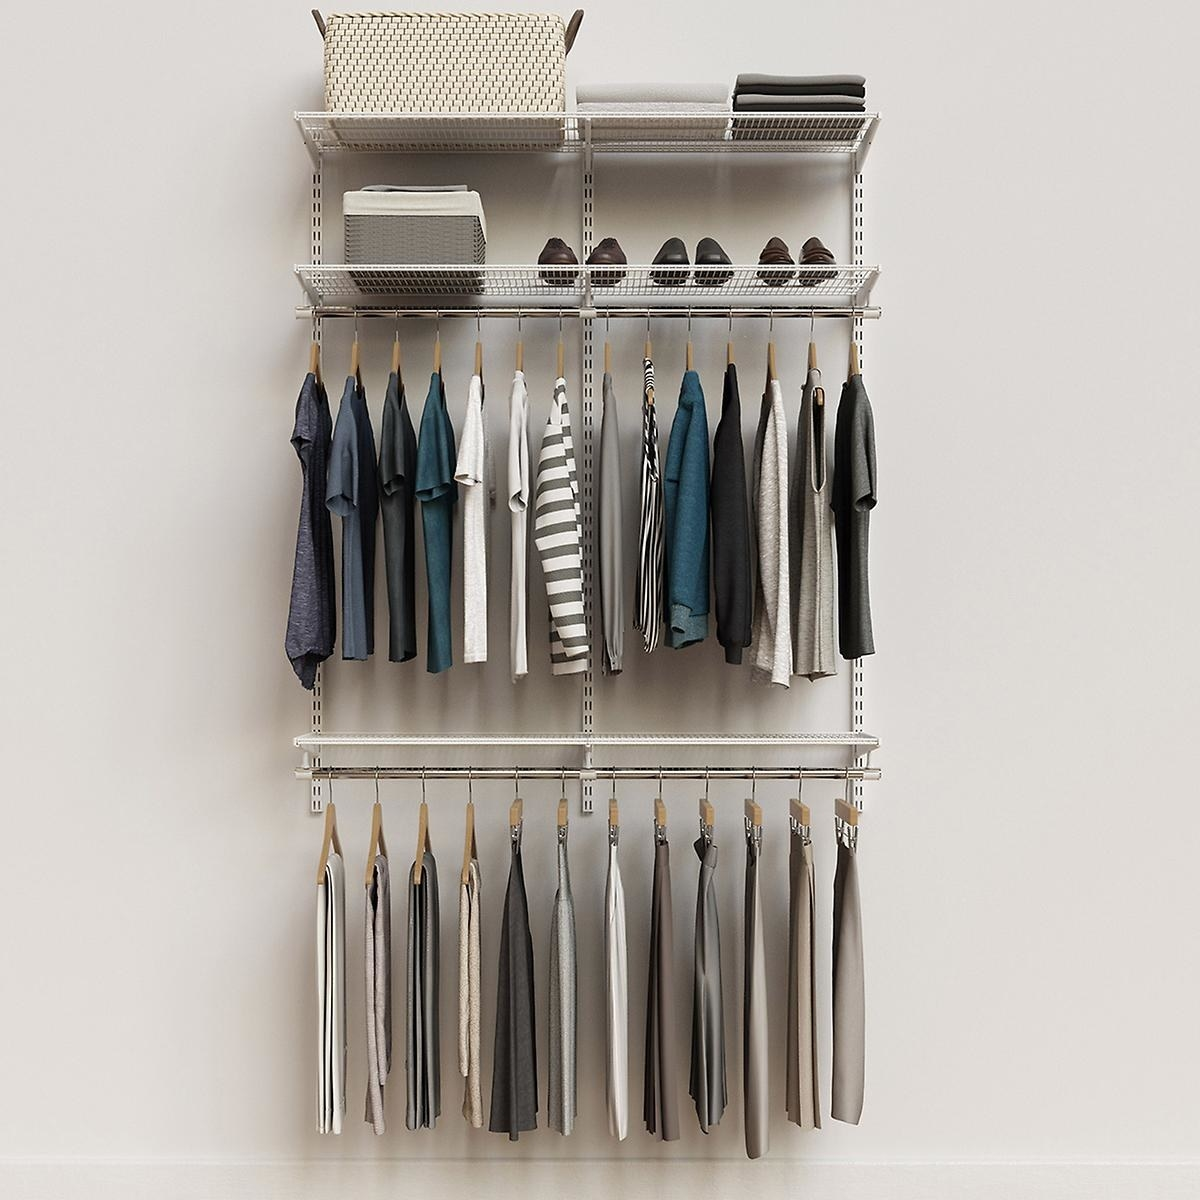 The adjustable closet organizer which has two dowels for hanging clothes and two shelves for baskets/extra storage